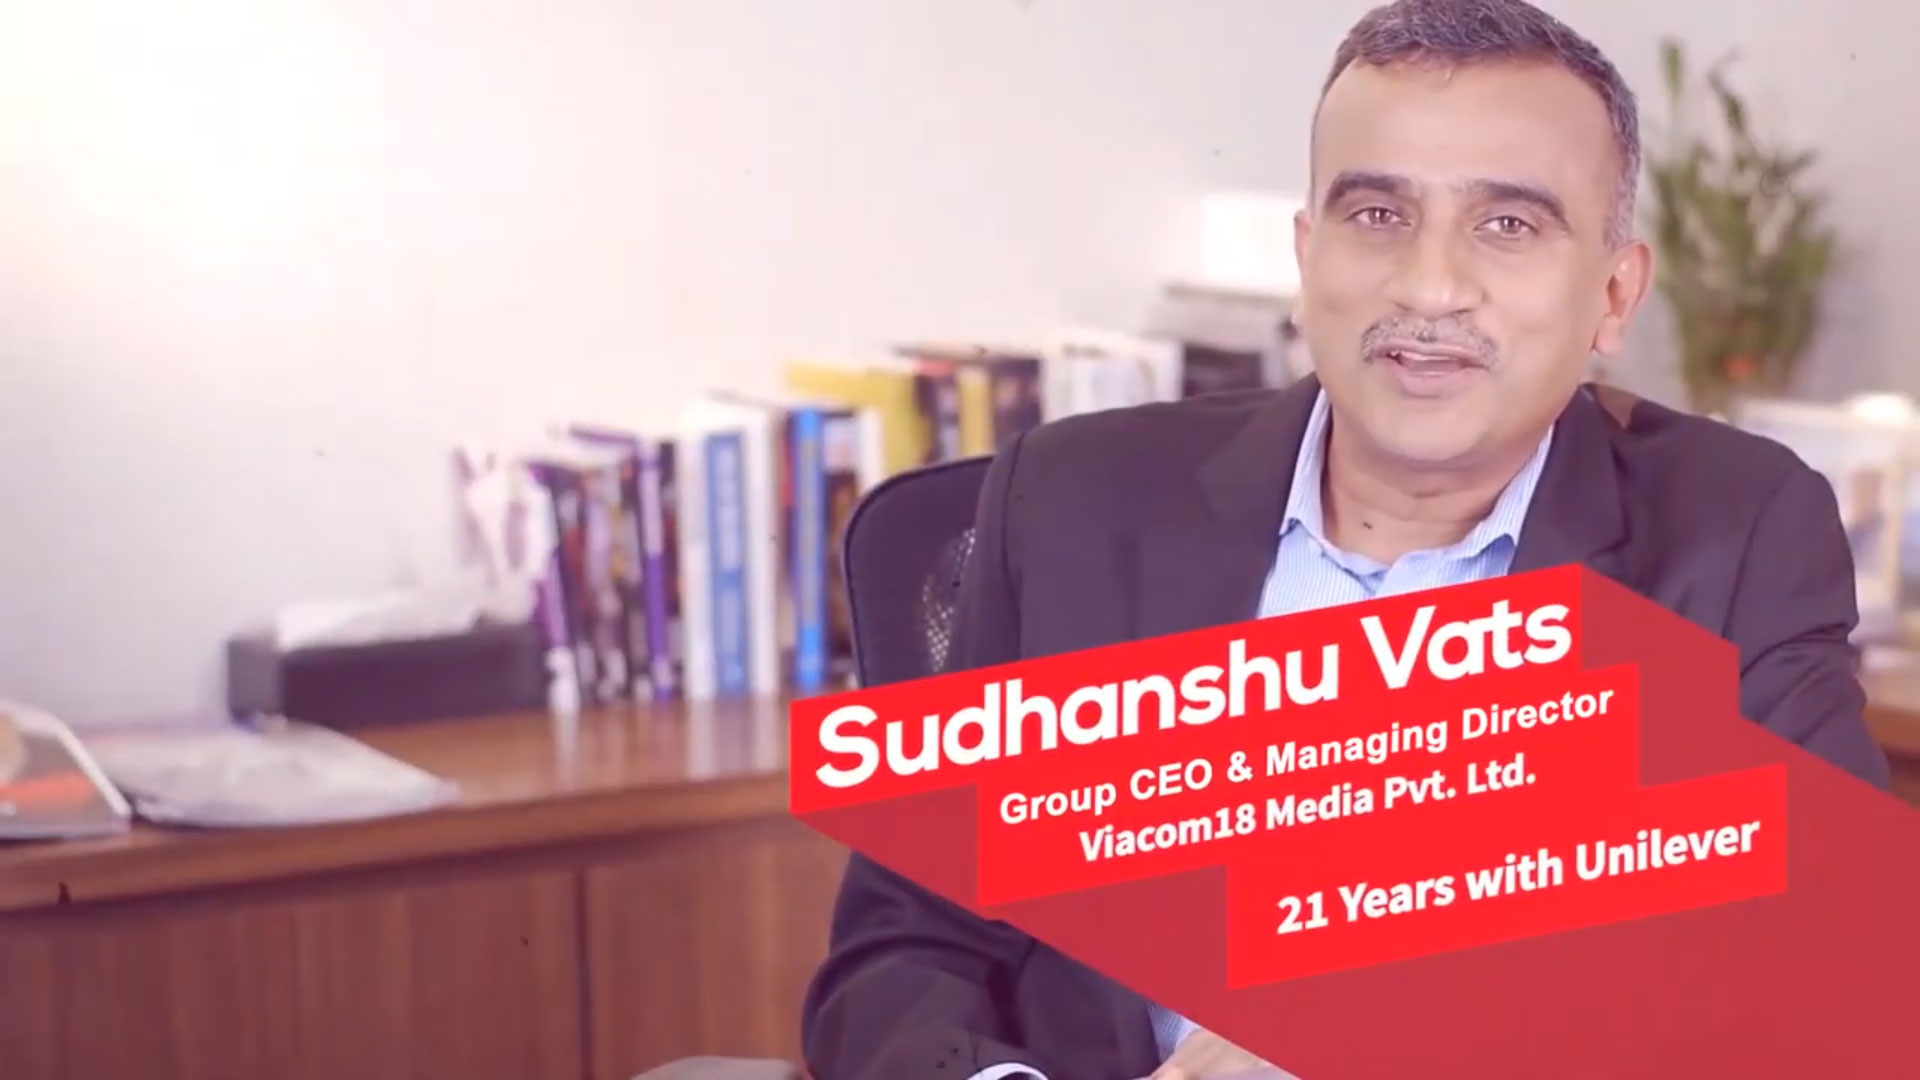 Sudhanshu Vats Group CEO & Managing Director